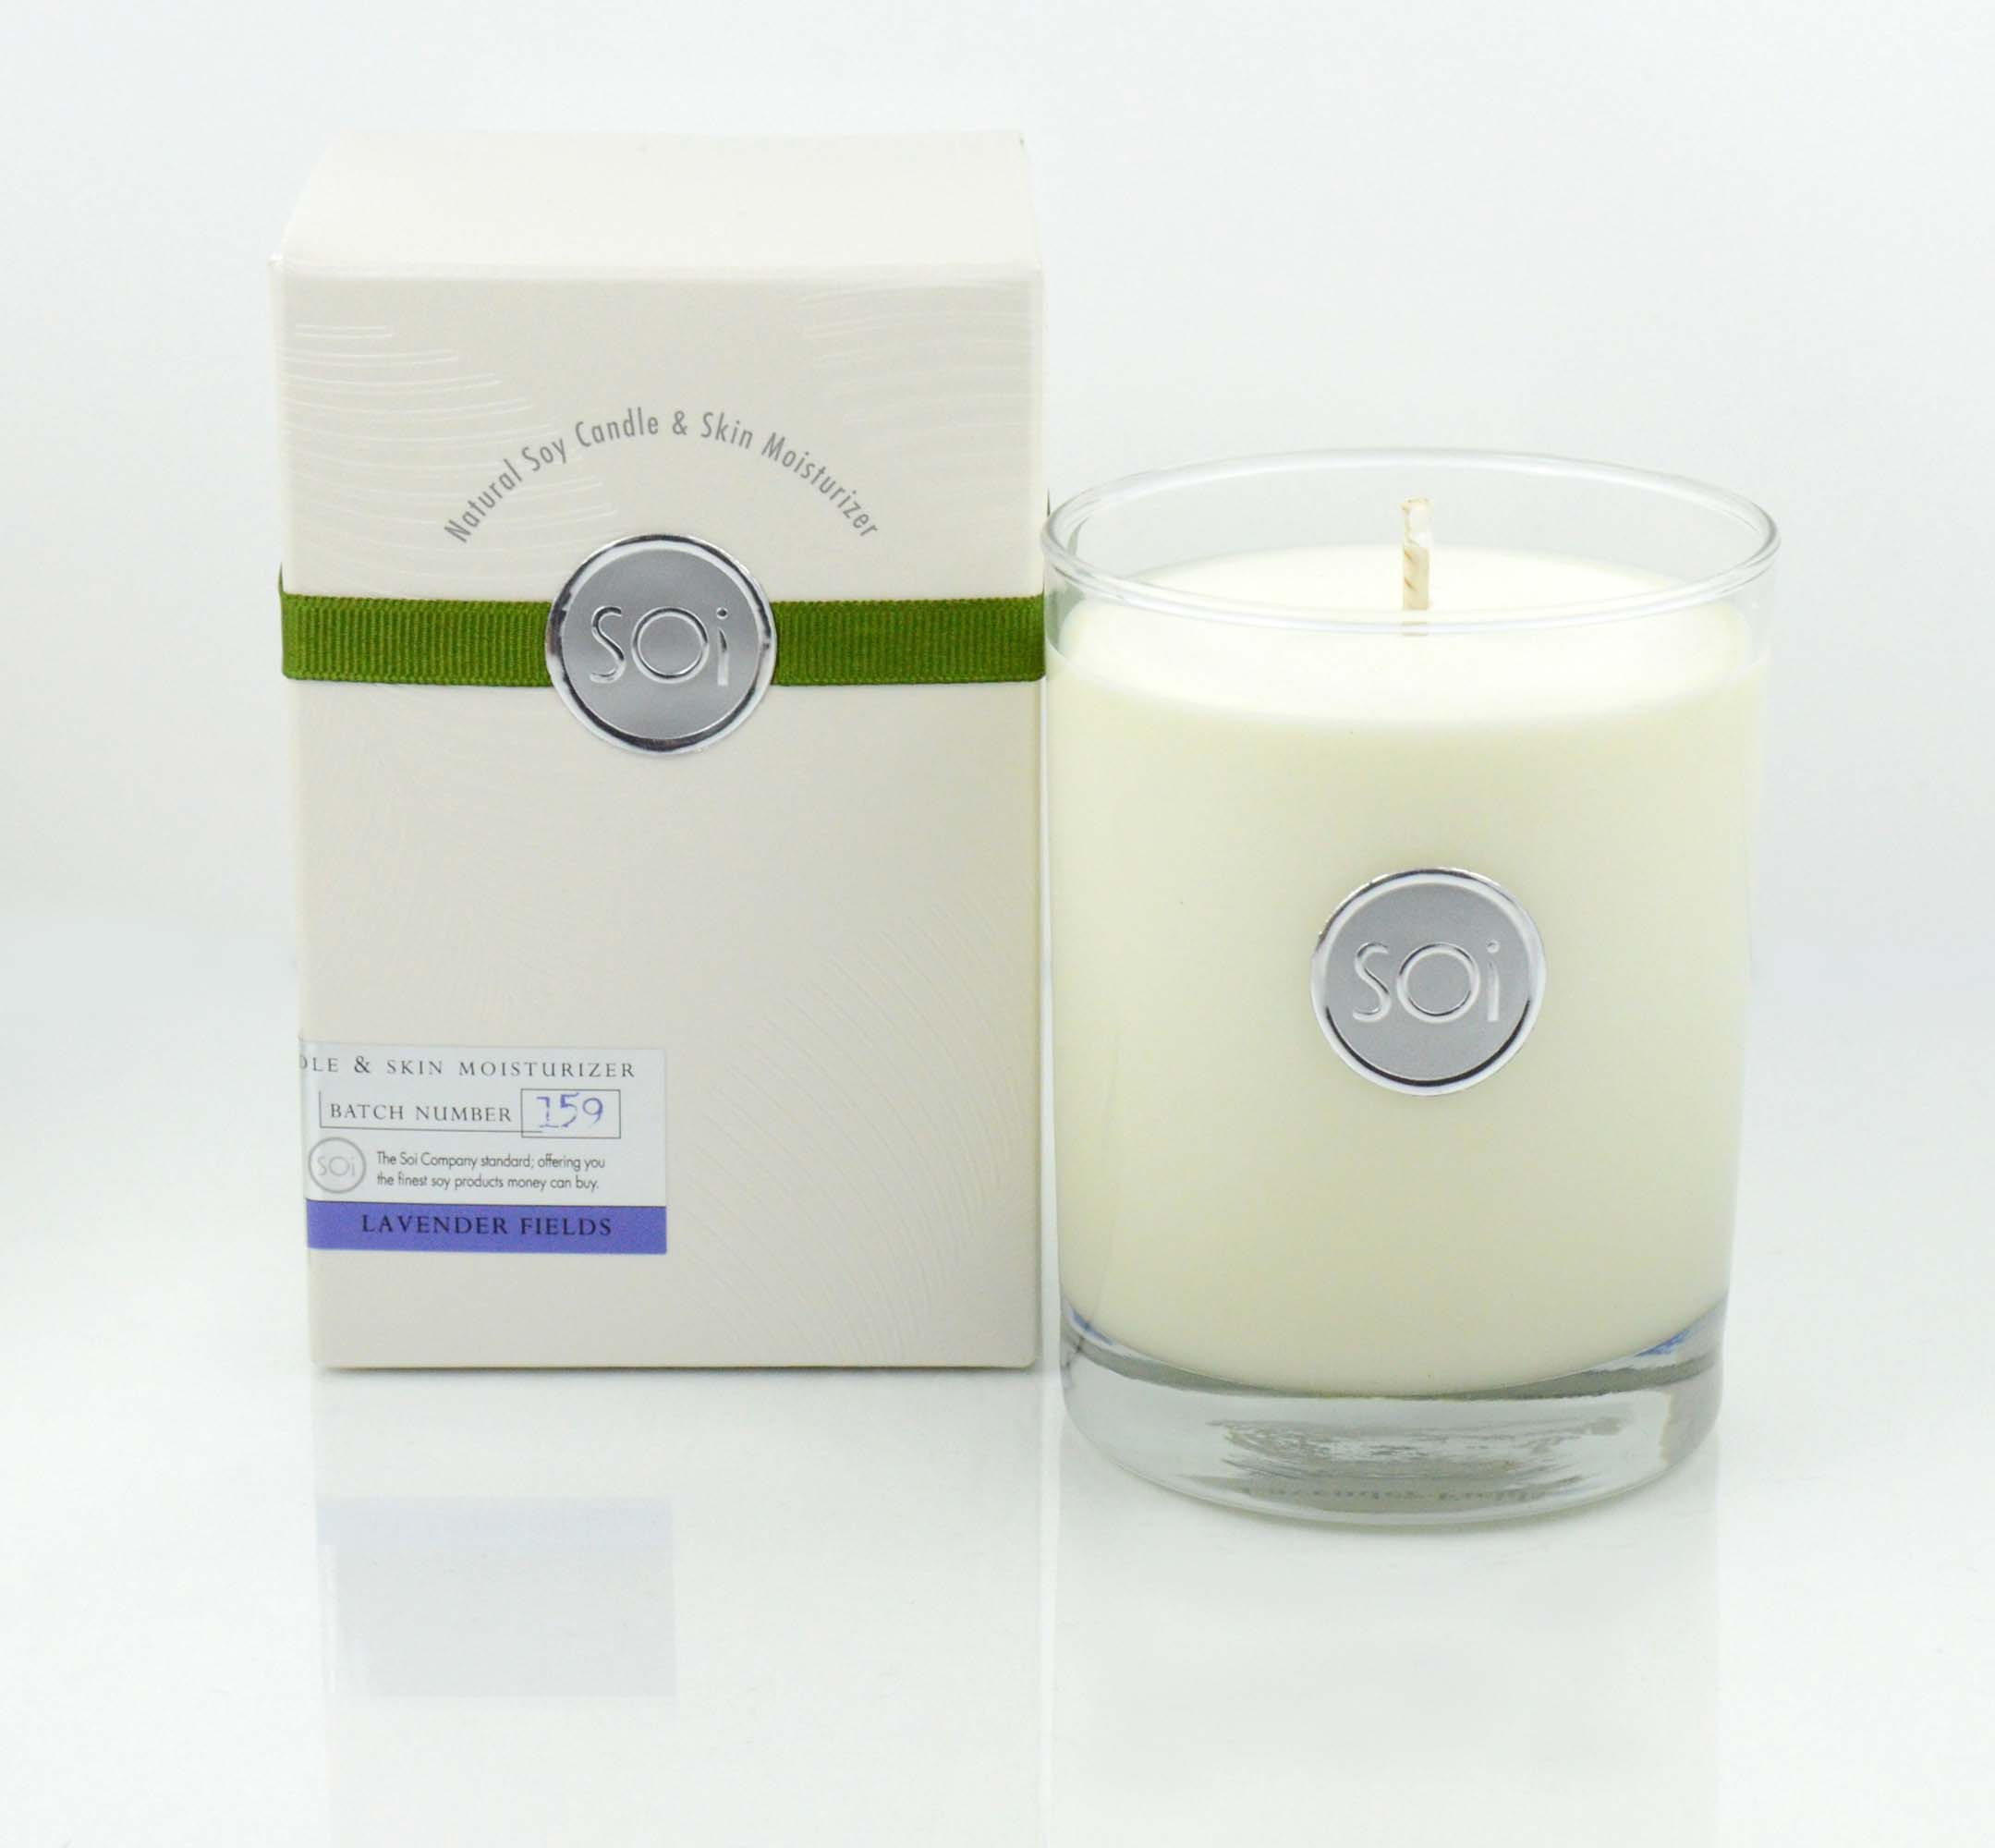 Try candles from The SOi Company for romantic candlelight and a ...